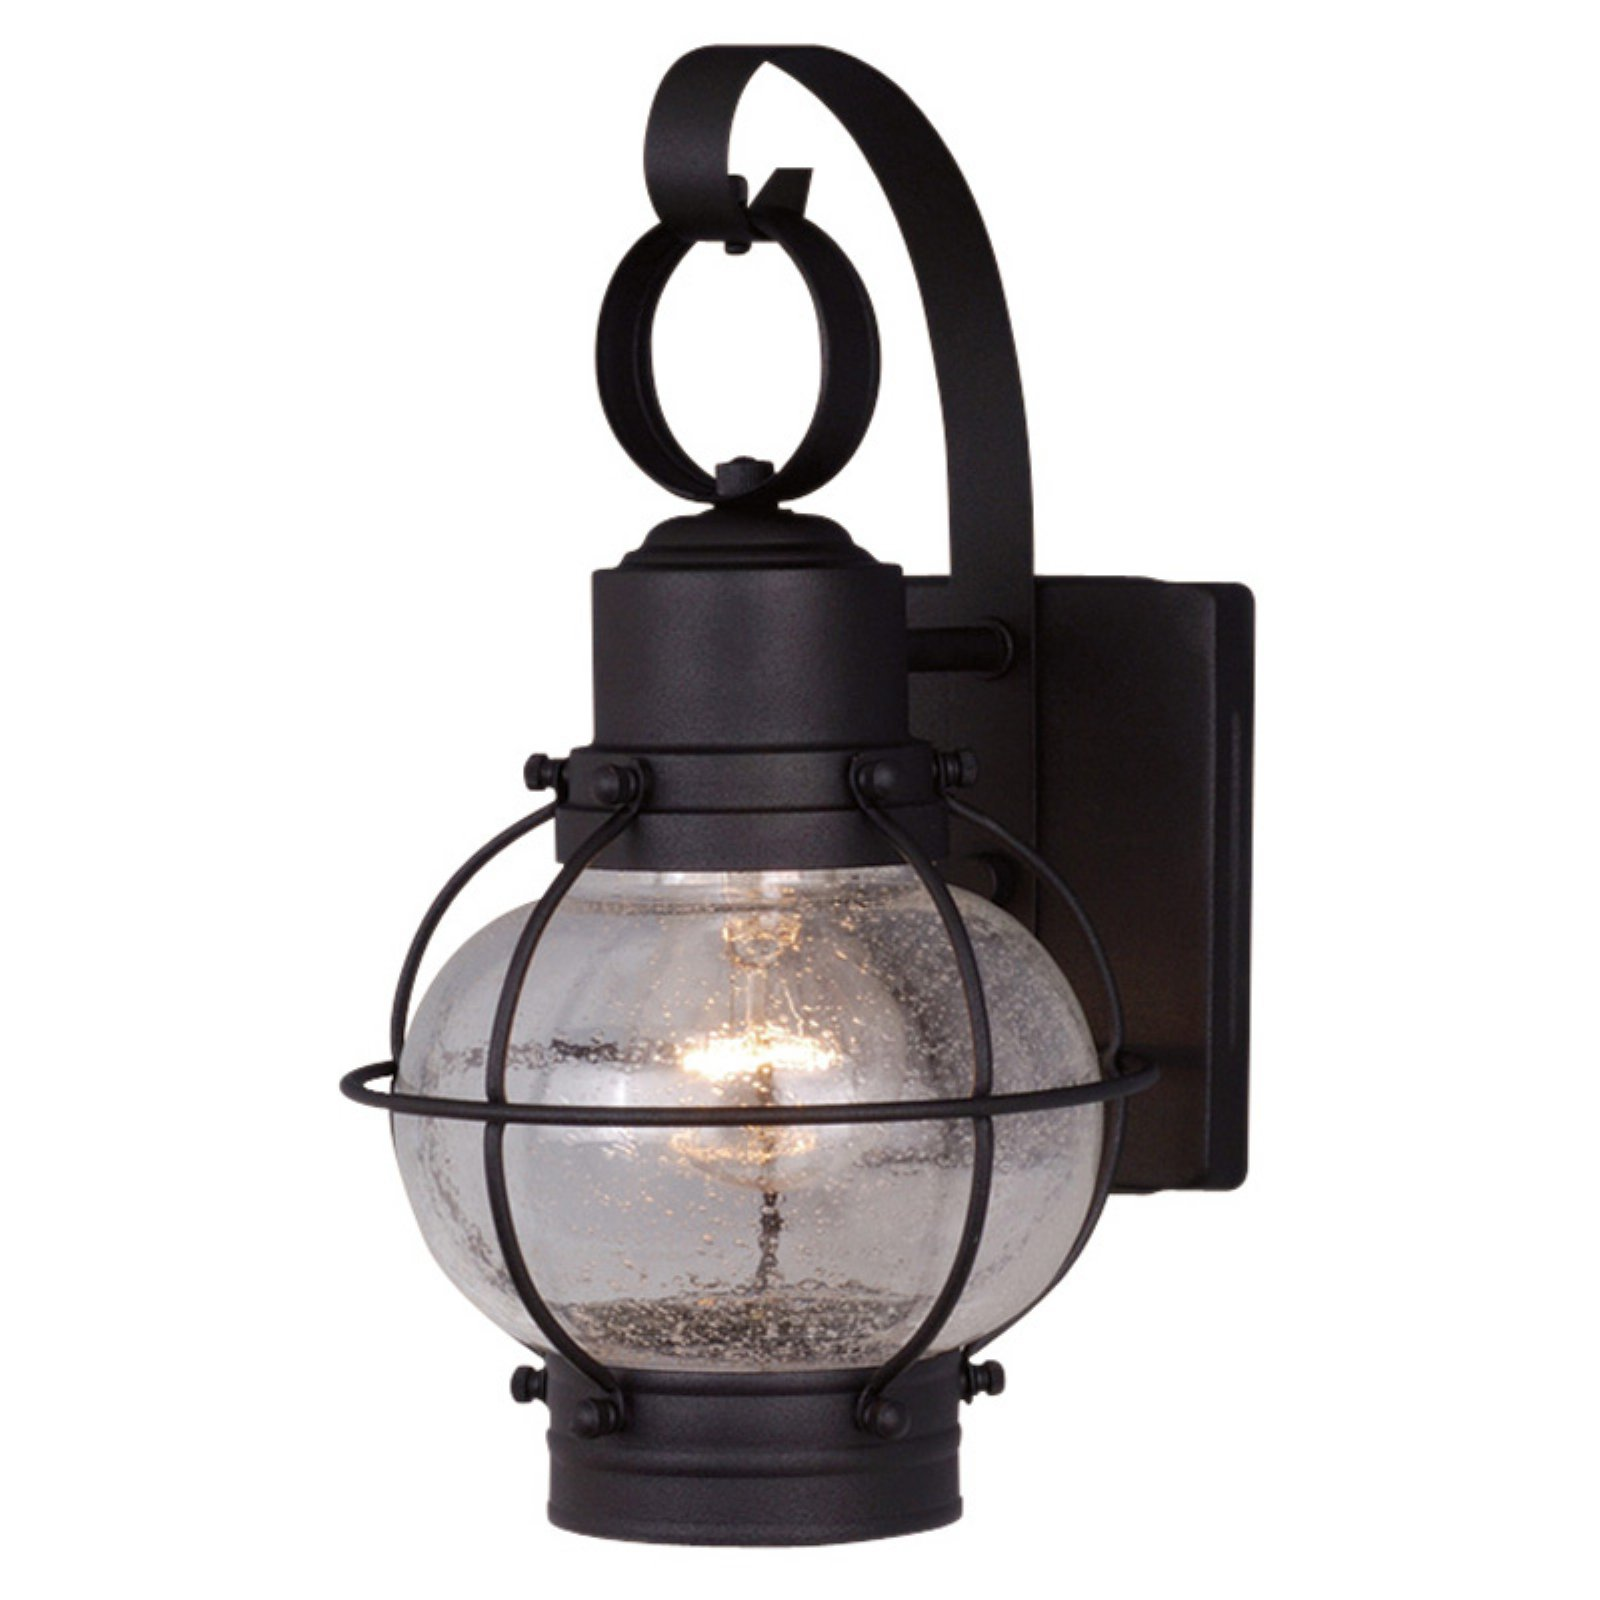 Vaxcel Chatham OW21861 Outdoor Wall Sconce